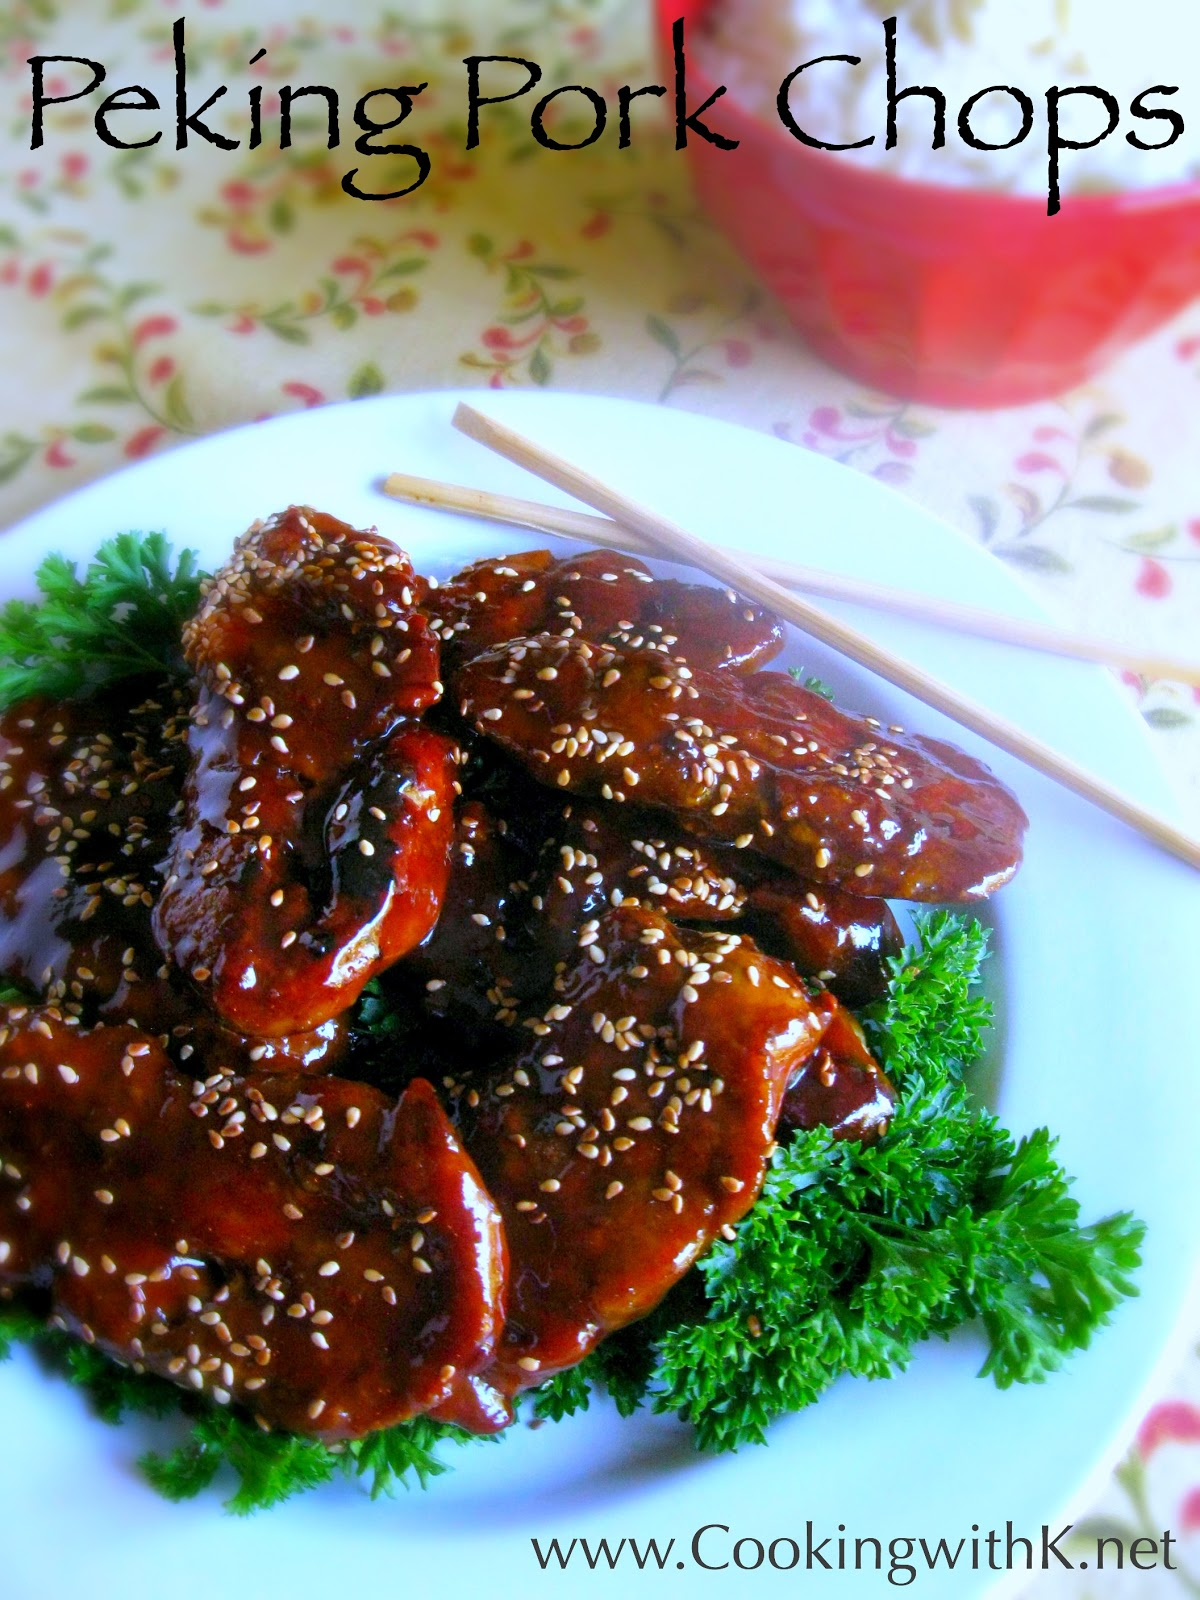 Cooking with K: Peking Pork Chops